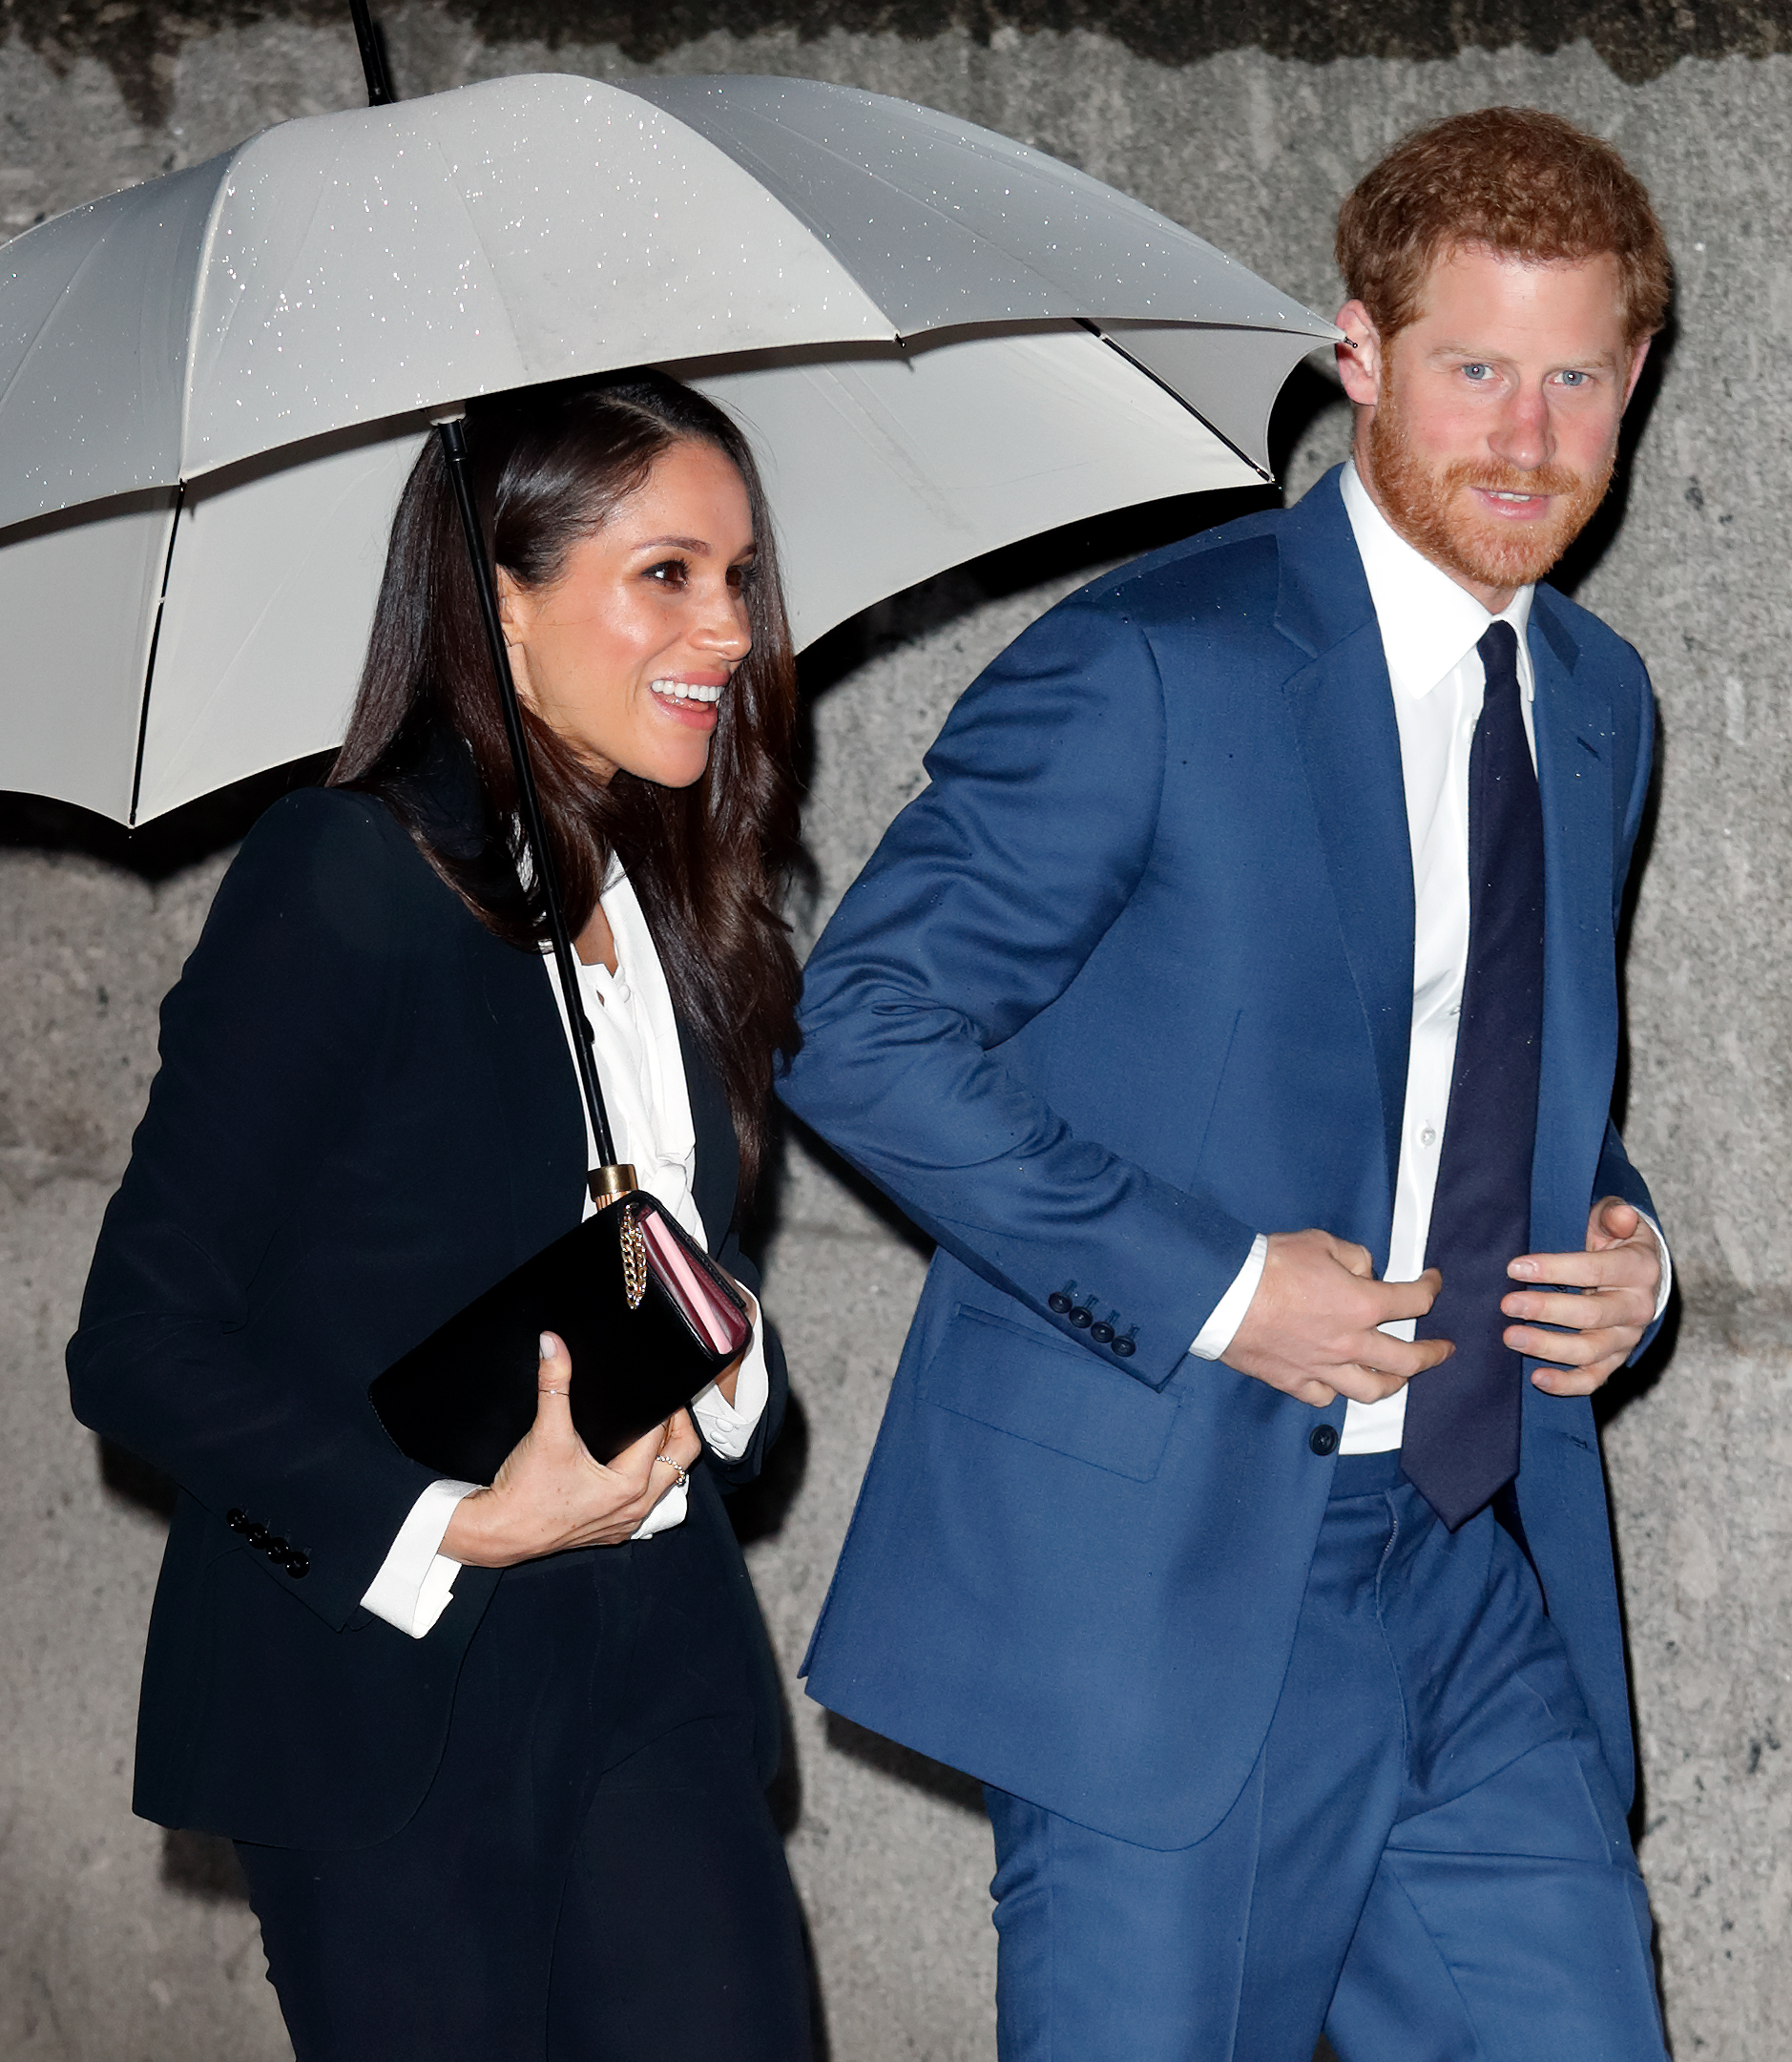 Meghan Markle and Prince Harry with Umbrella